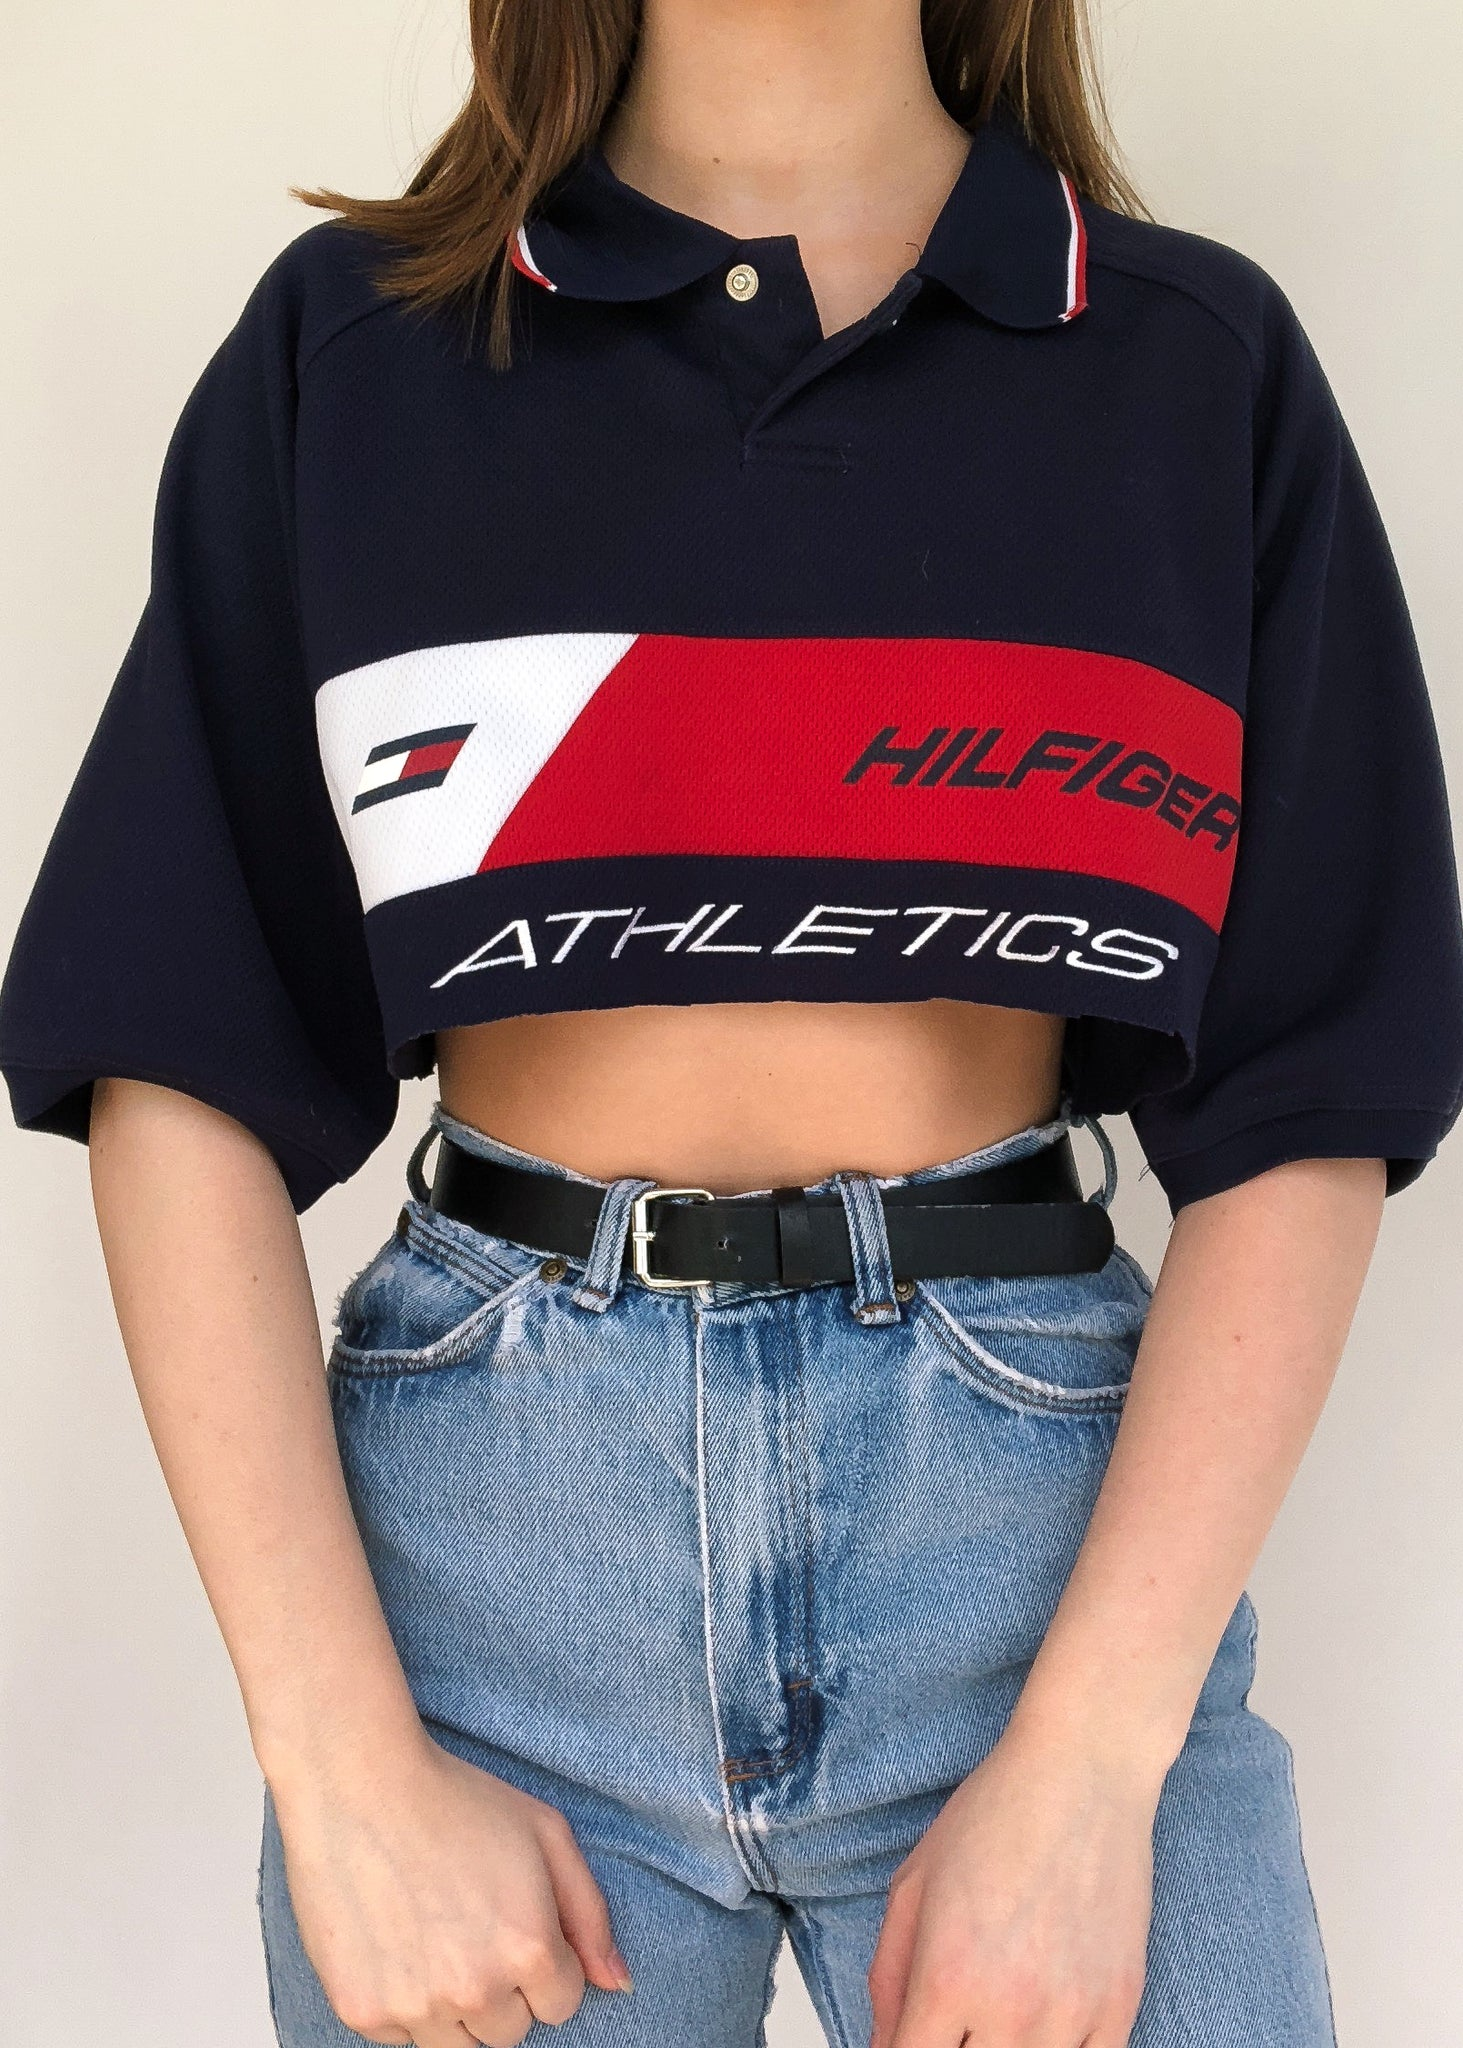 Hilfiger Athletics Polo